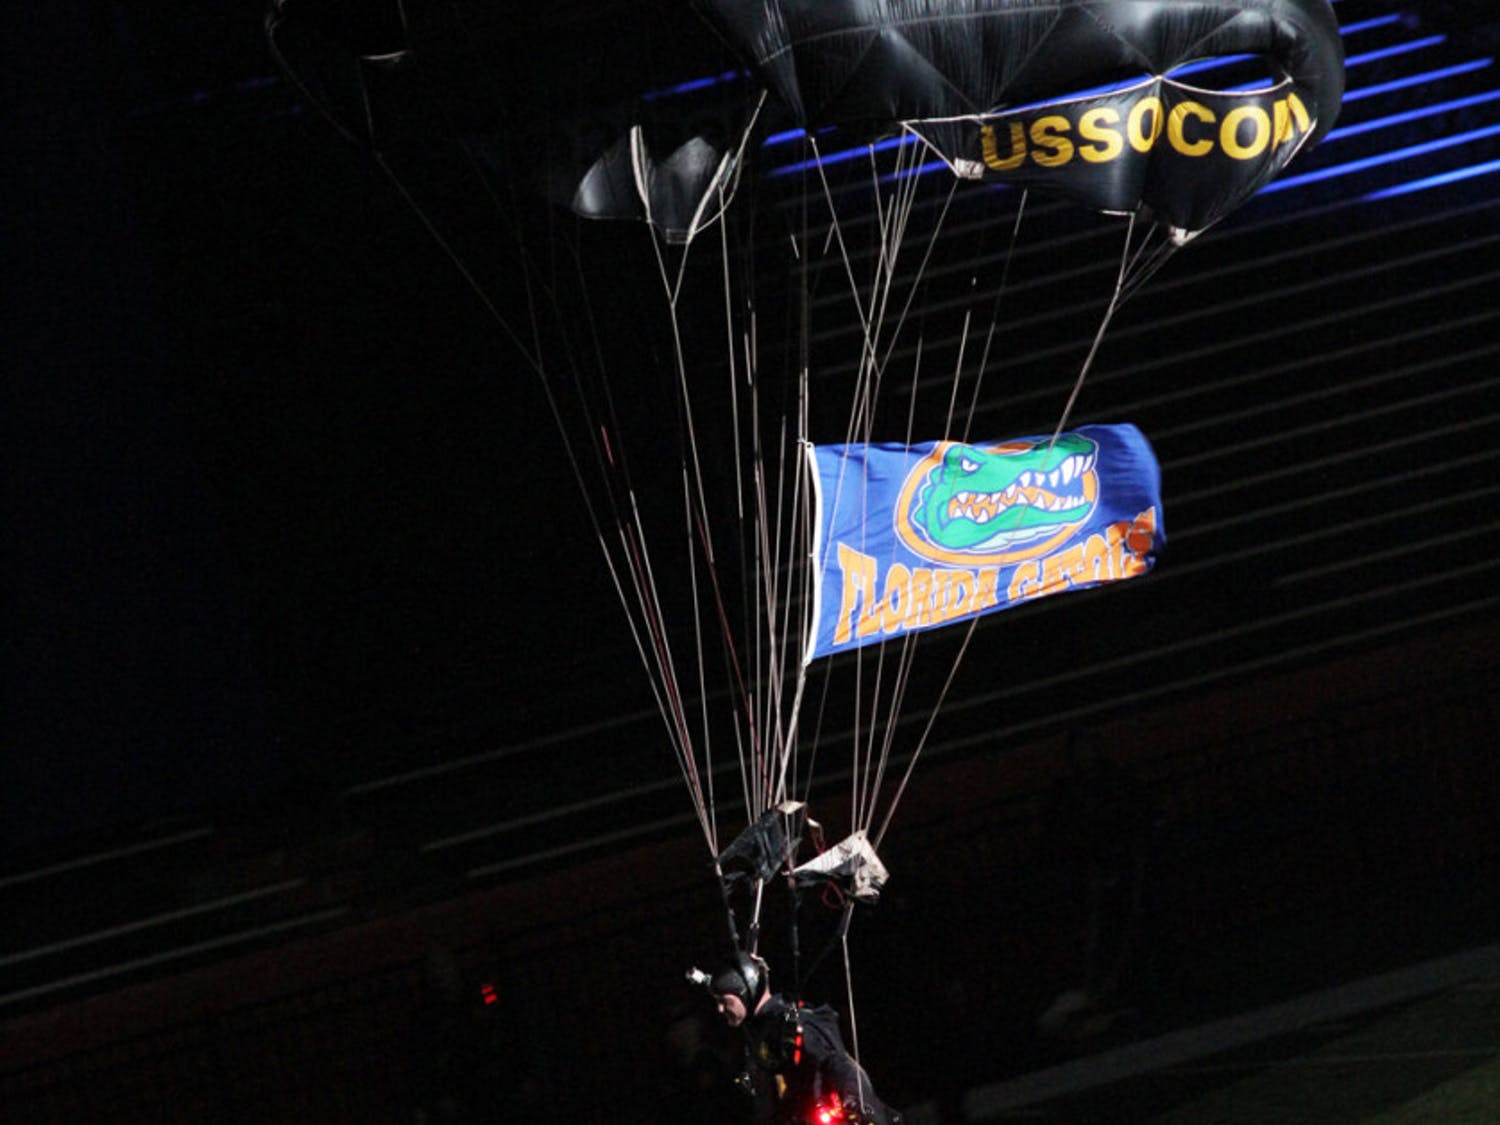 A member of the Para-Commandos skydiving team lands on Florida Field at Ben Hill Griffin Stadium during Gator Growl on Friday night.